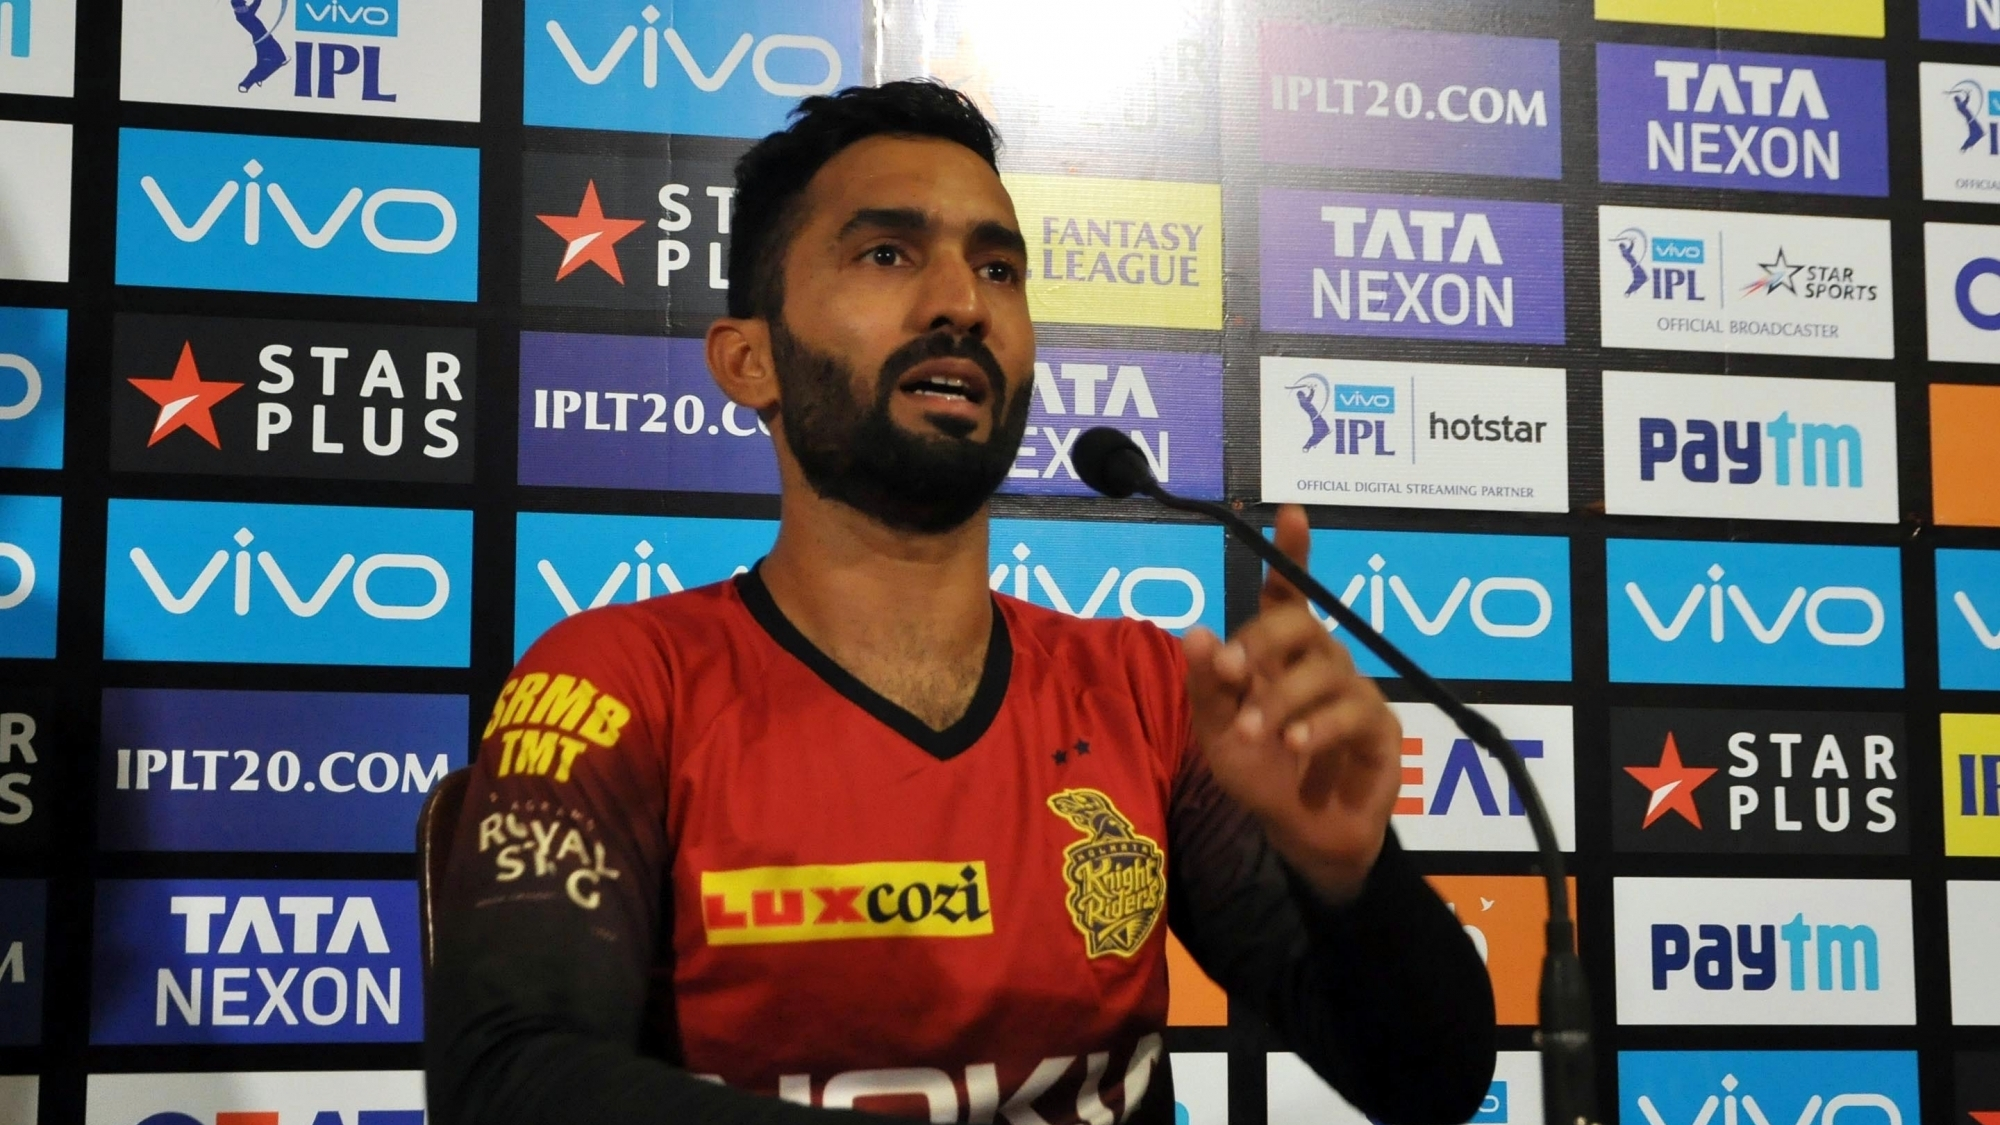 IPL 2018: Dinesh Karthik defends Kolkata Knight Riders' uncertain batting order